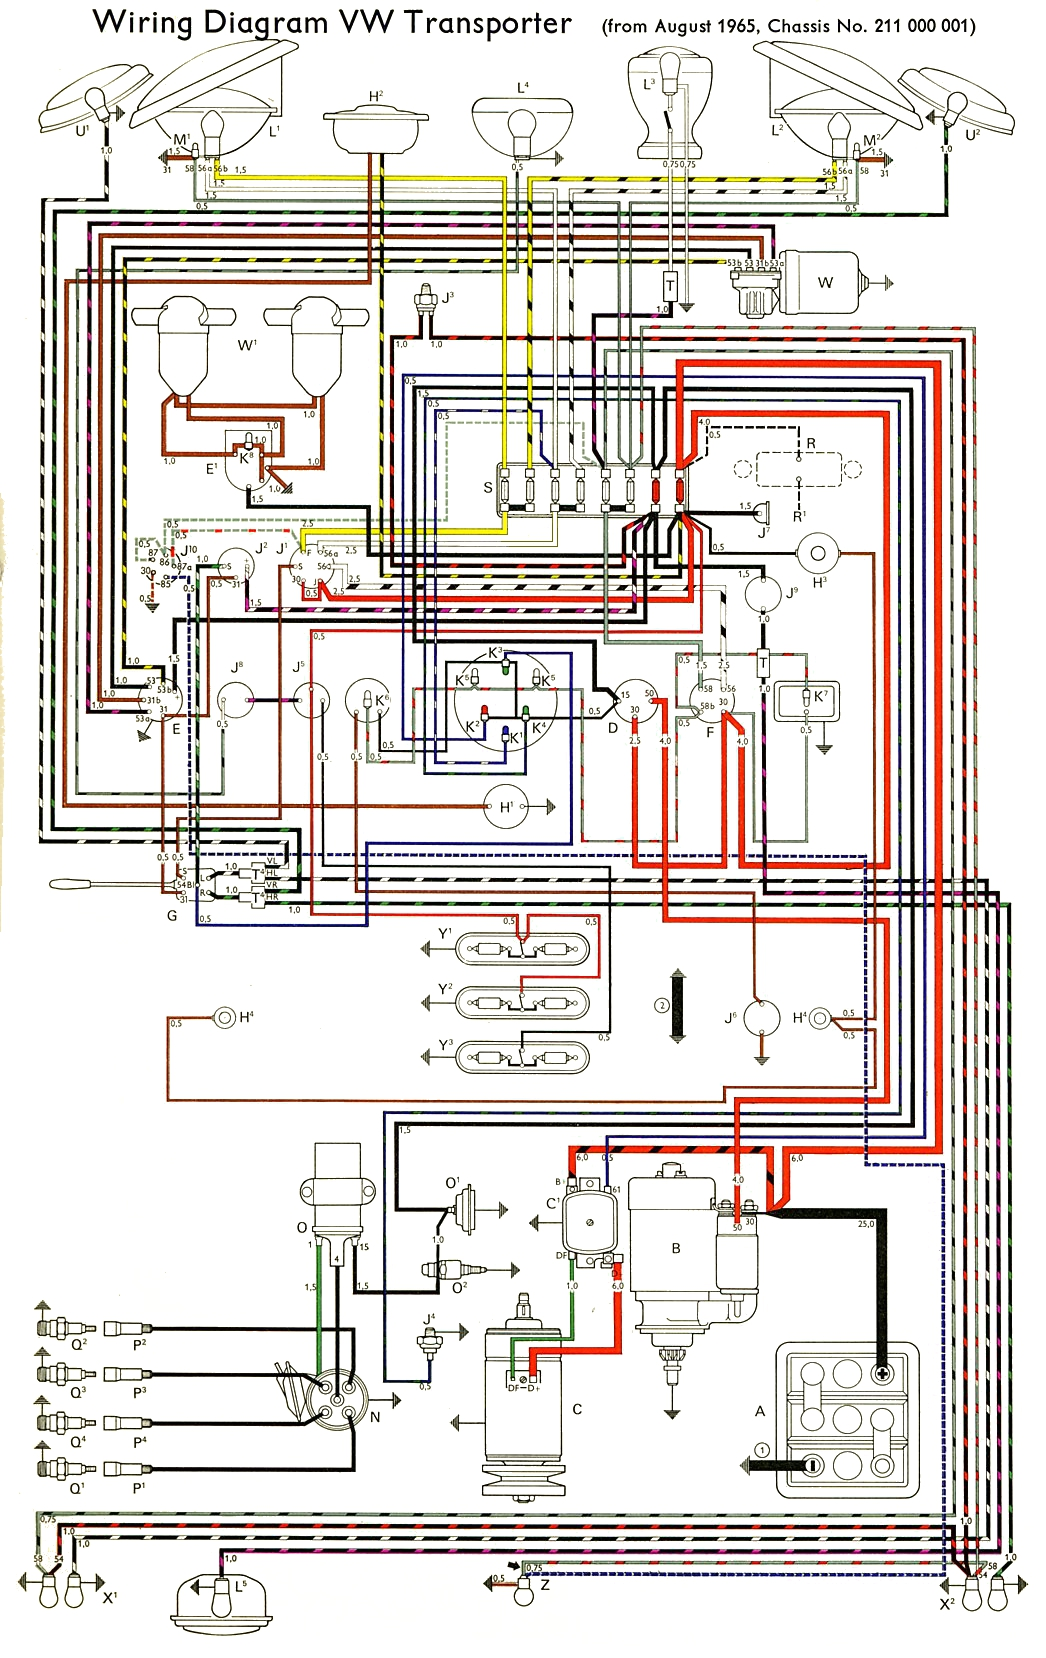 69 Vw Van Wiring Library Diagram 2 Switches Harness